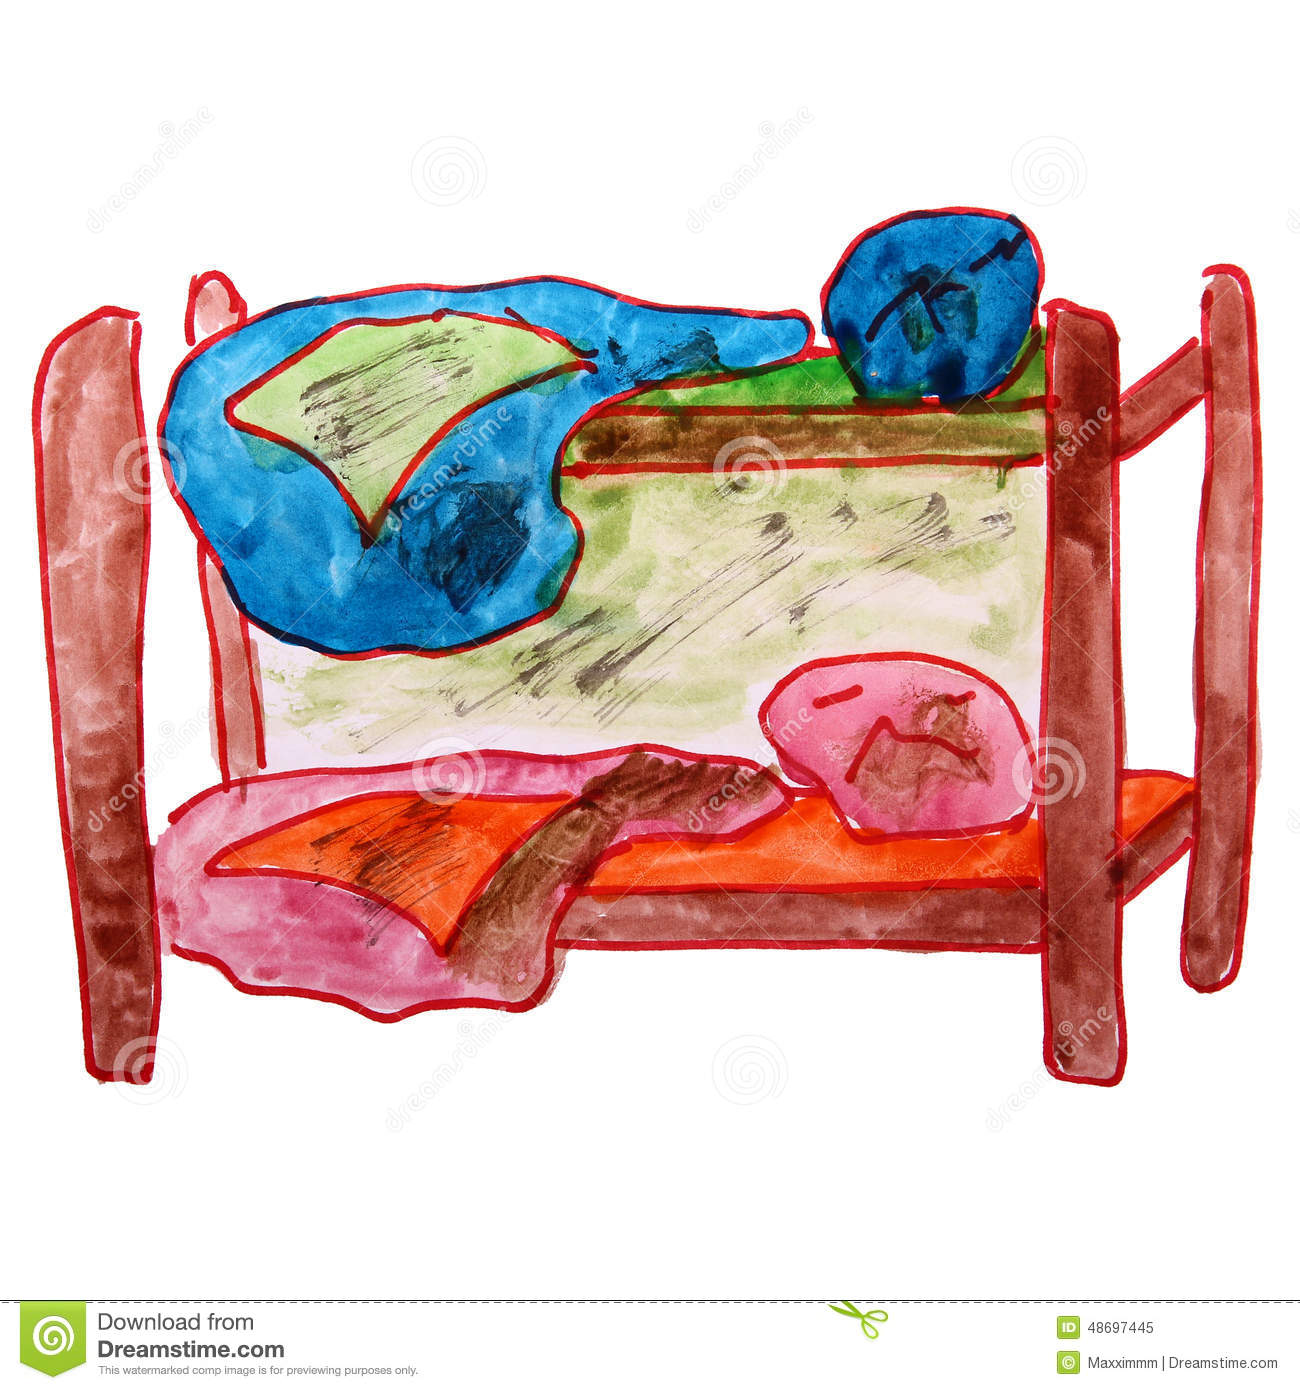 Watercolor Drawing Children Bed, Bunk Cartoon On A Stock Illustration - Image: 48697445